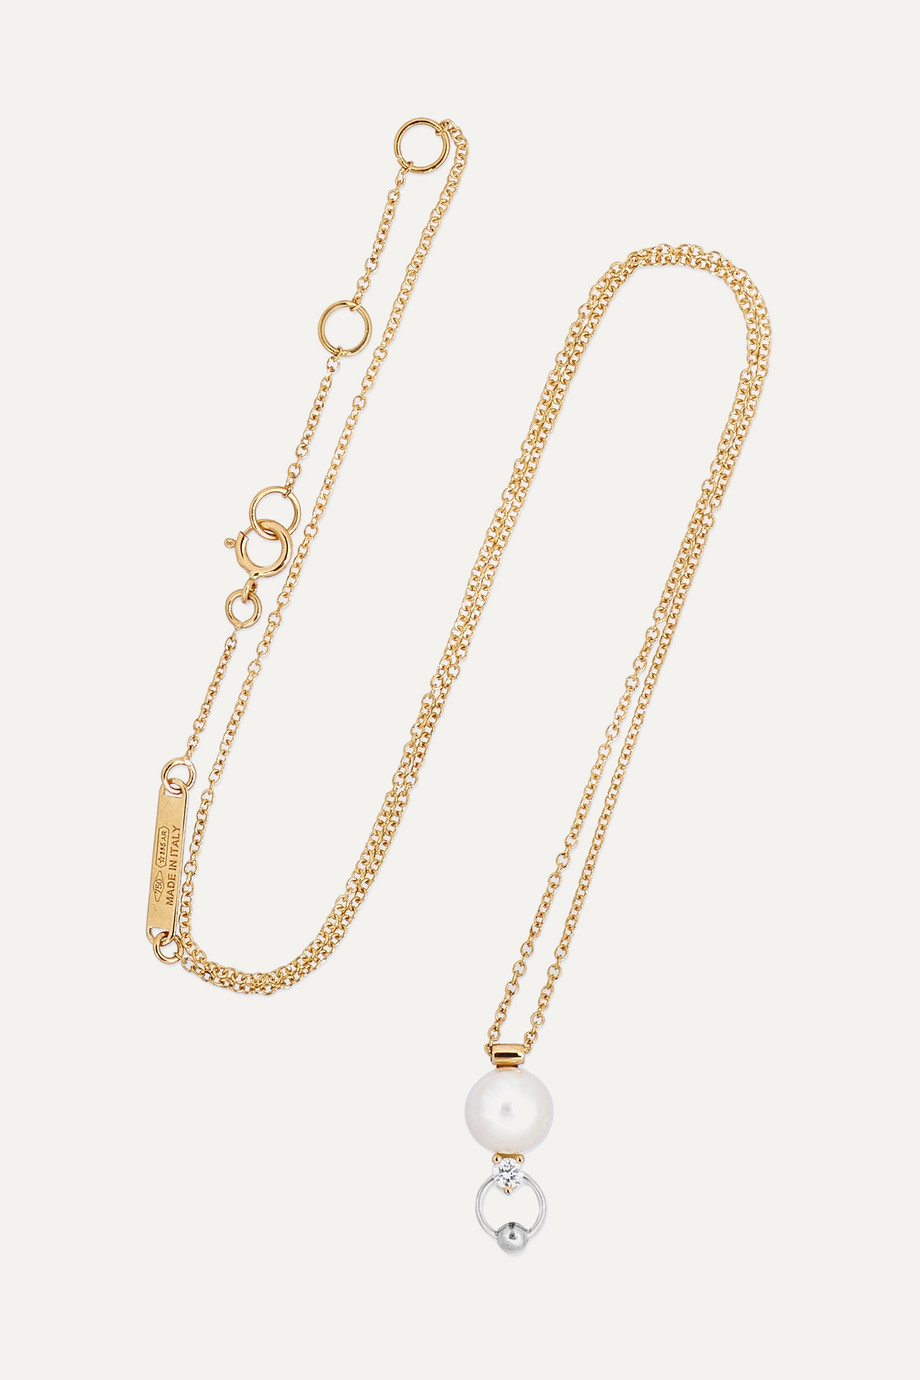 DELFINA DELETTREZ 18-karat yellow and white gold diamond and pearl necklace